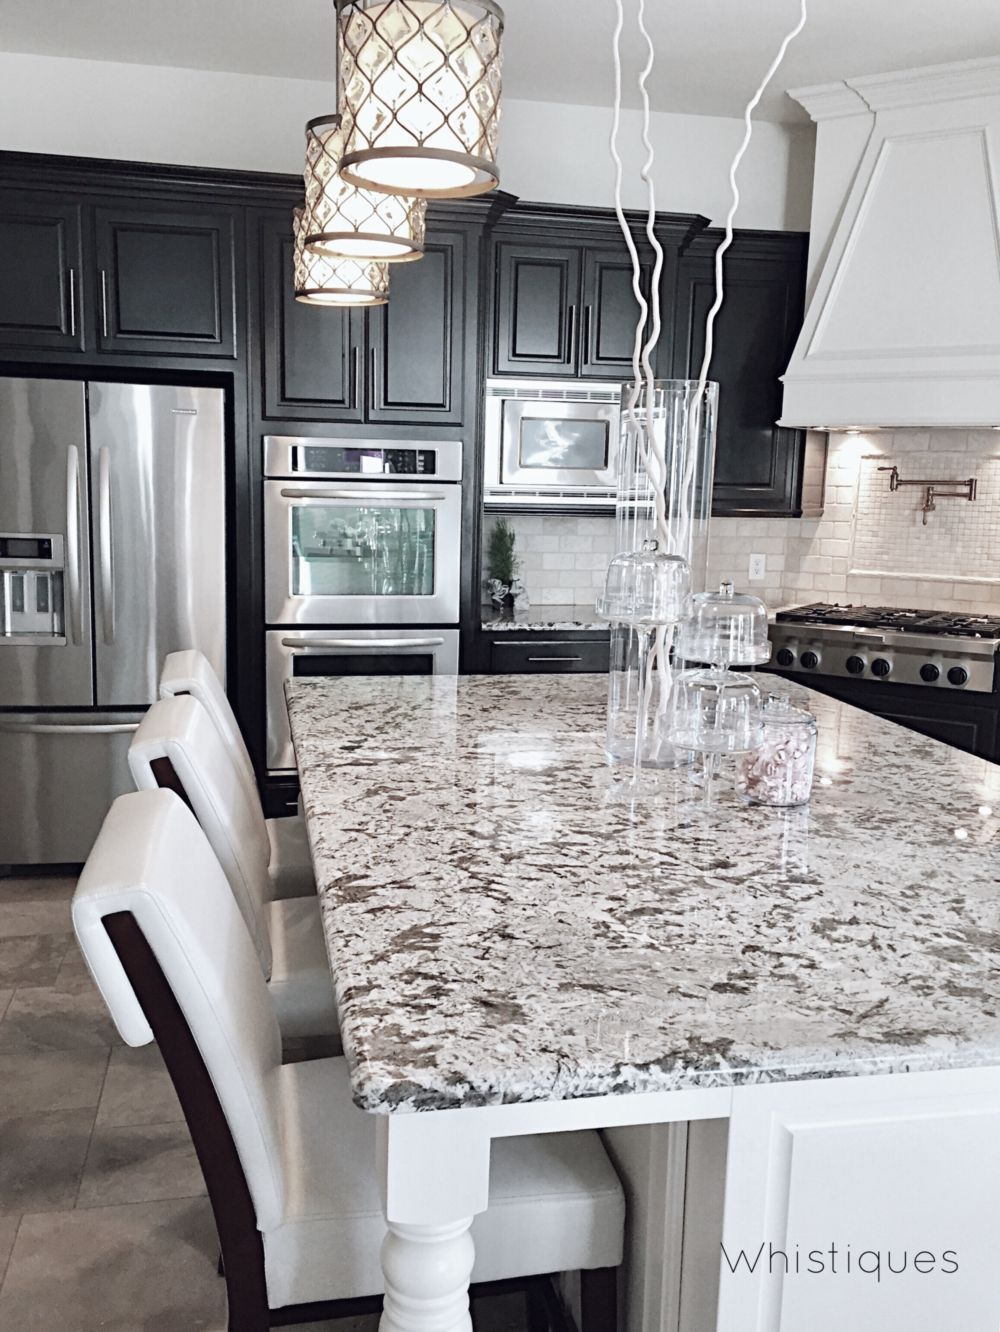 Download Wallpaper Gray And White Kitchen Remodel Ideas